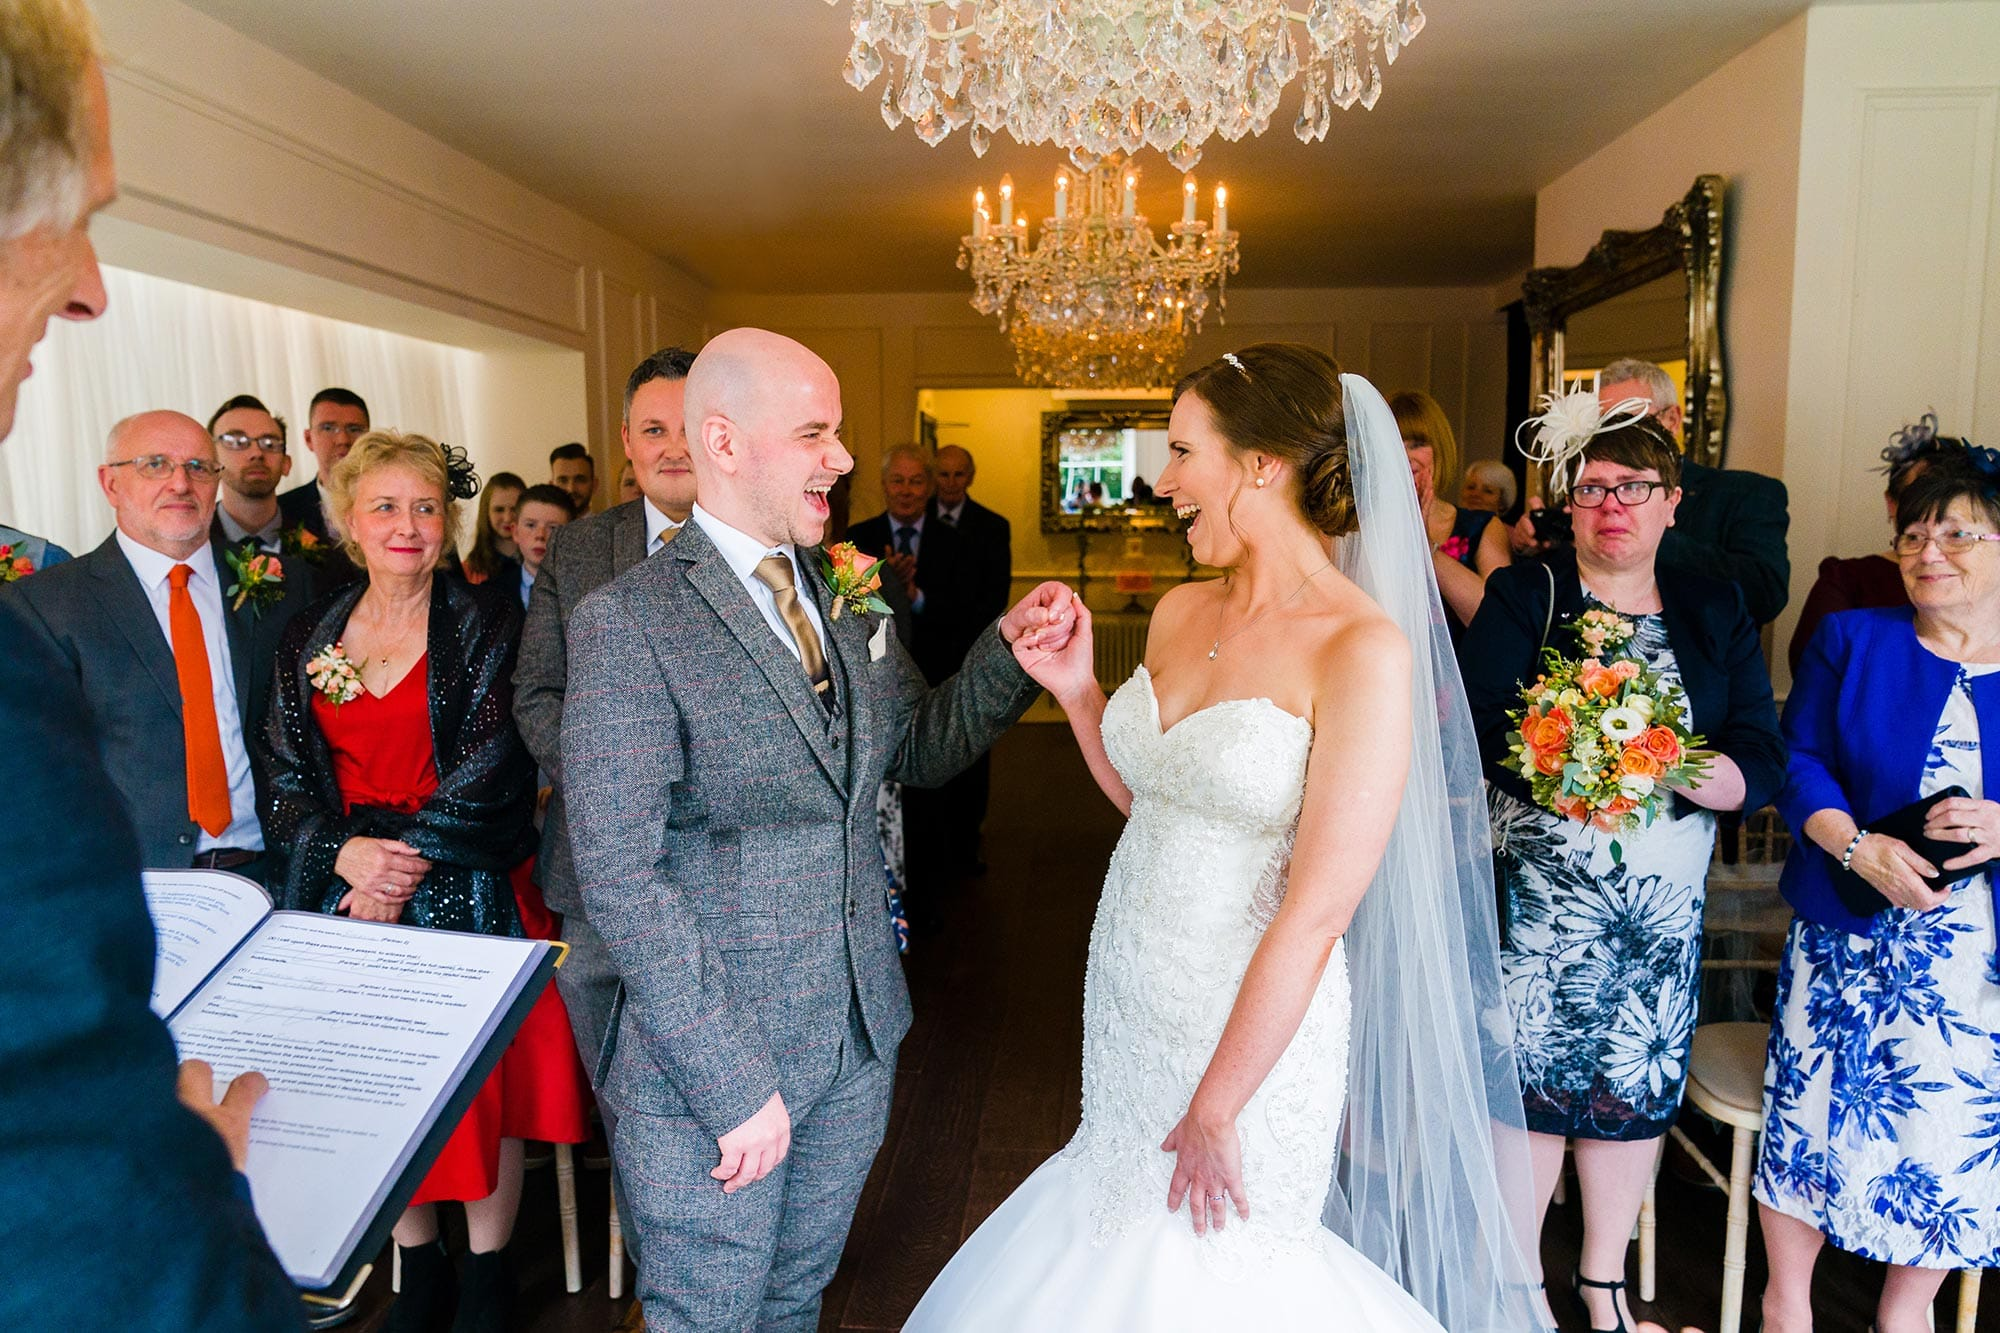 A wedding photo taken at Old Vicarage in Nottingham of the Bride and groom cheering just after the registrar prounounces them husband and wife, whilst their friends and family look on. Mother of bride's face is red from all the crying during the ceremony.